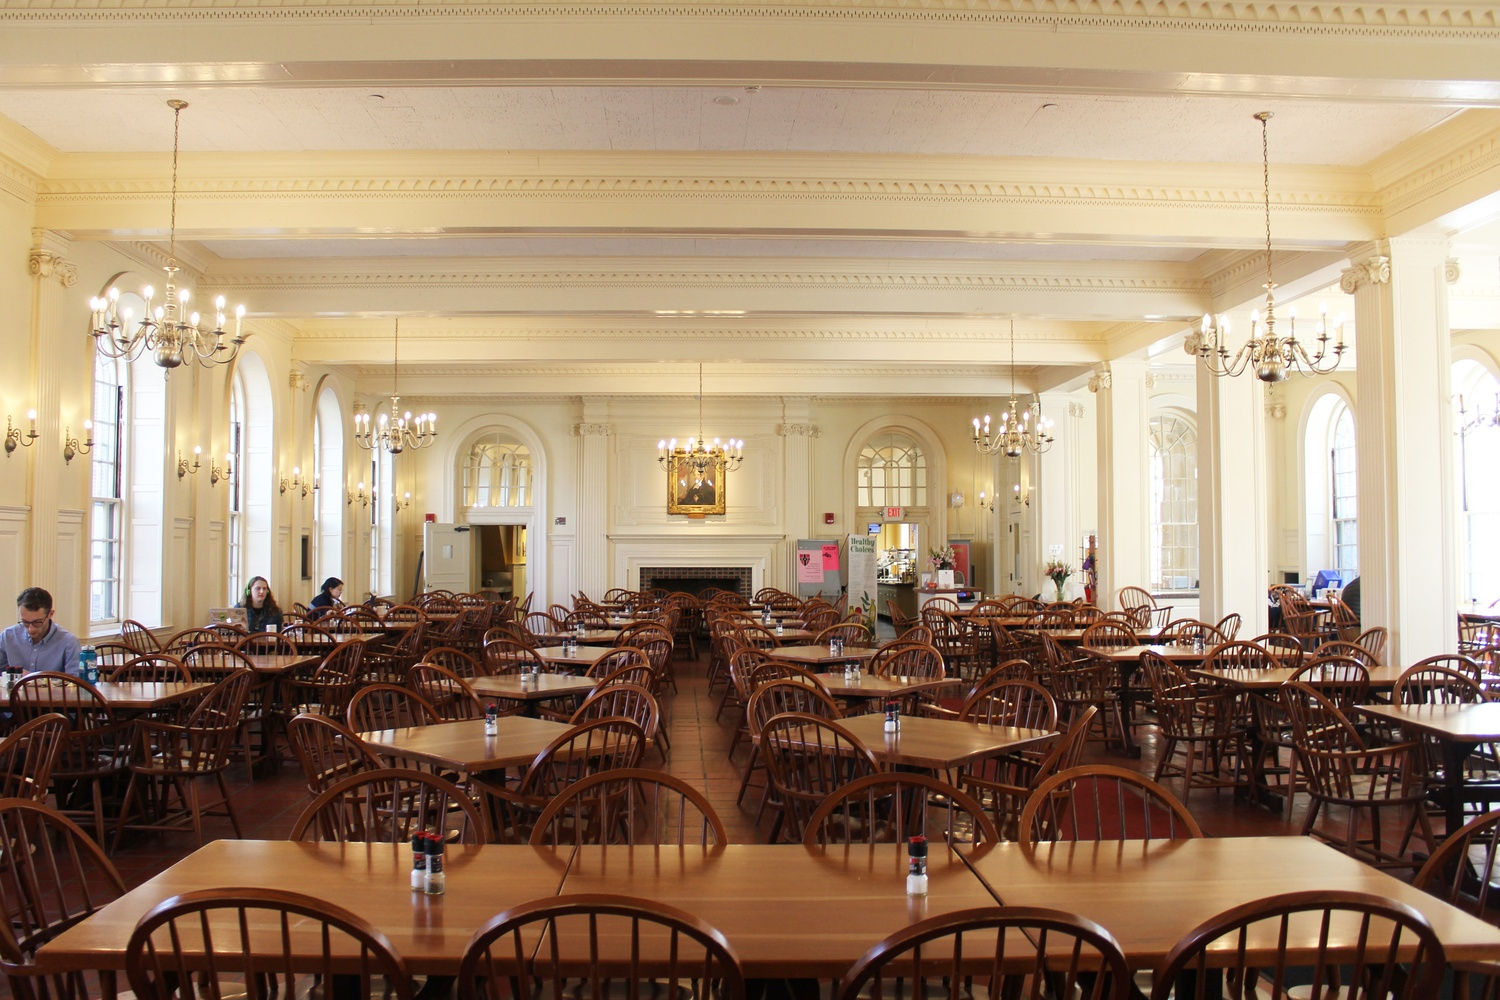 The Kirkland dining hall has also remained open.